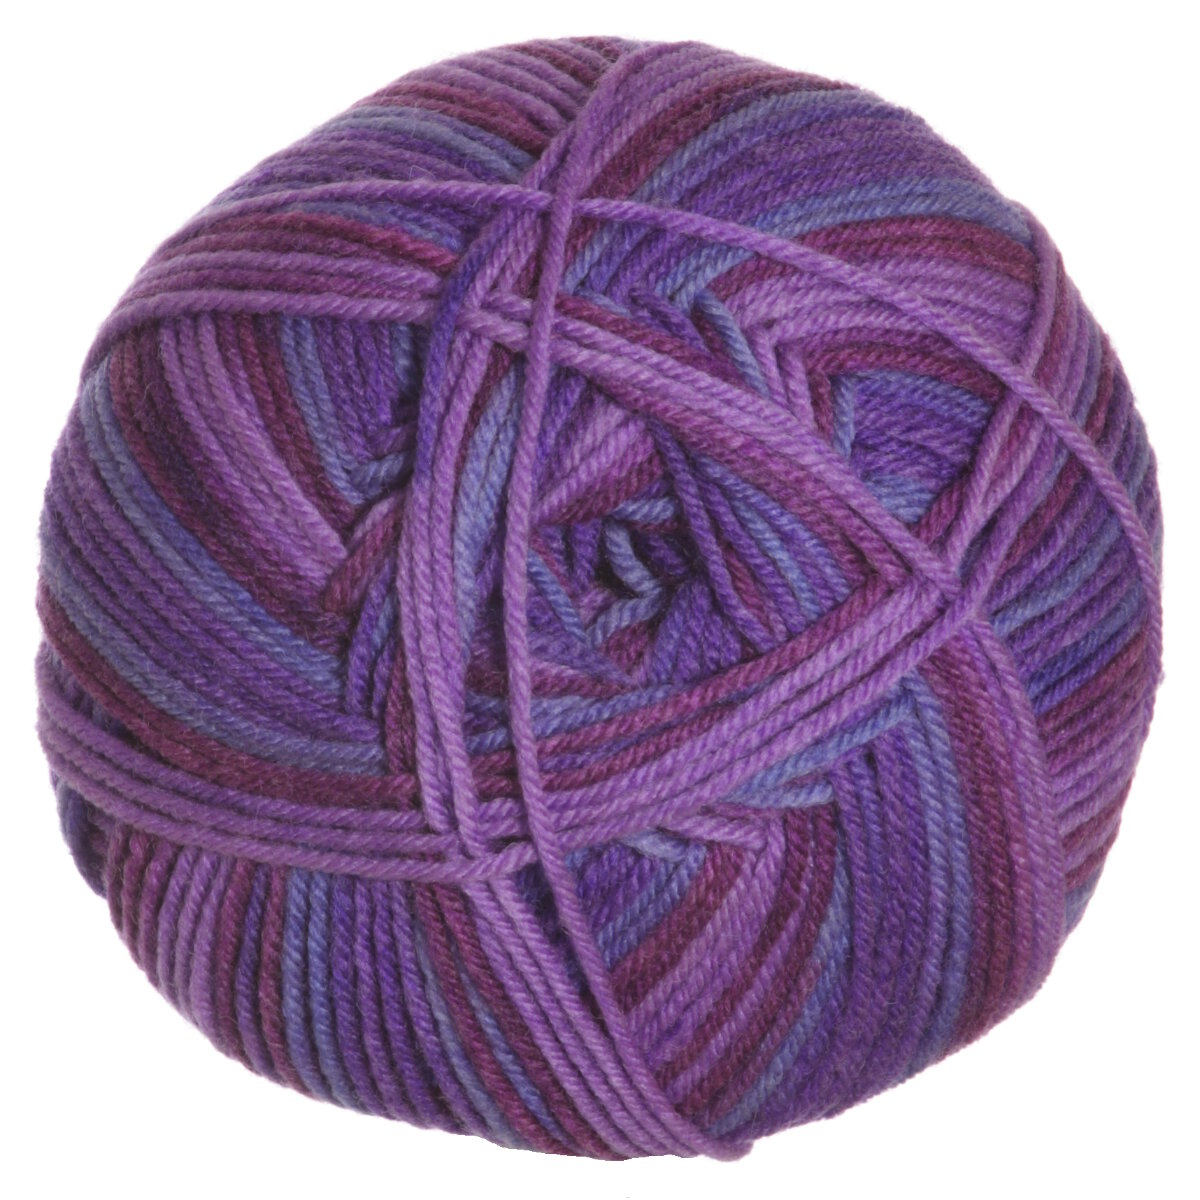 Knitting With Two Colors Carrying Yarn : Universal yarns adore colors yarn purple print at